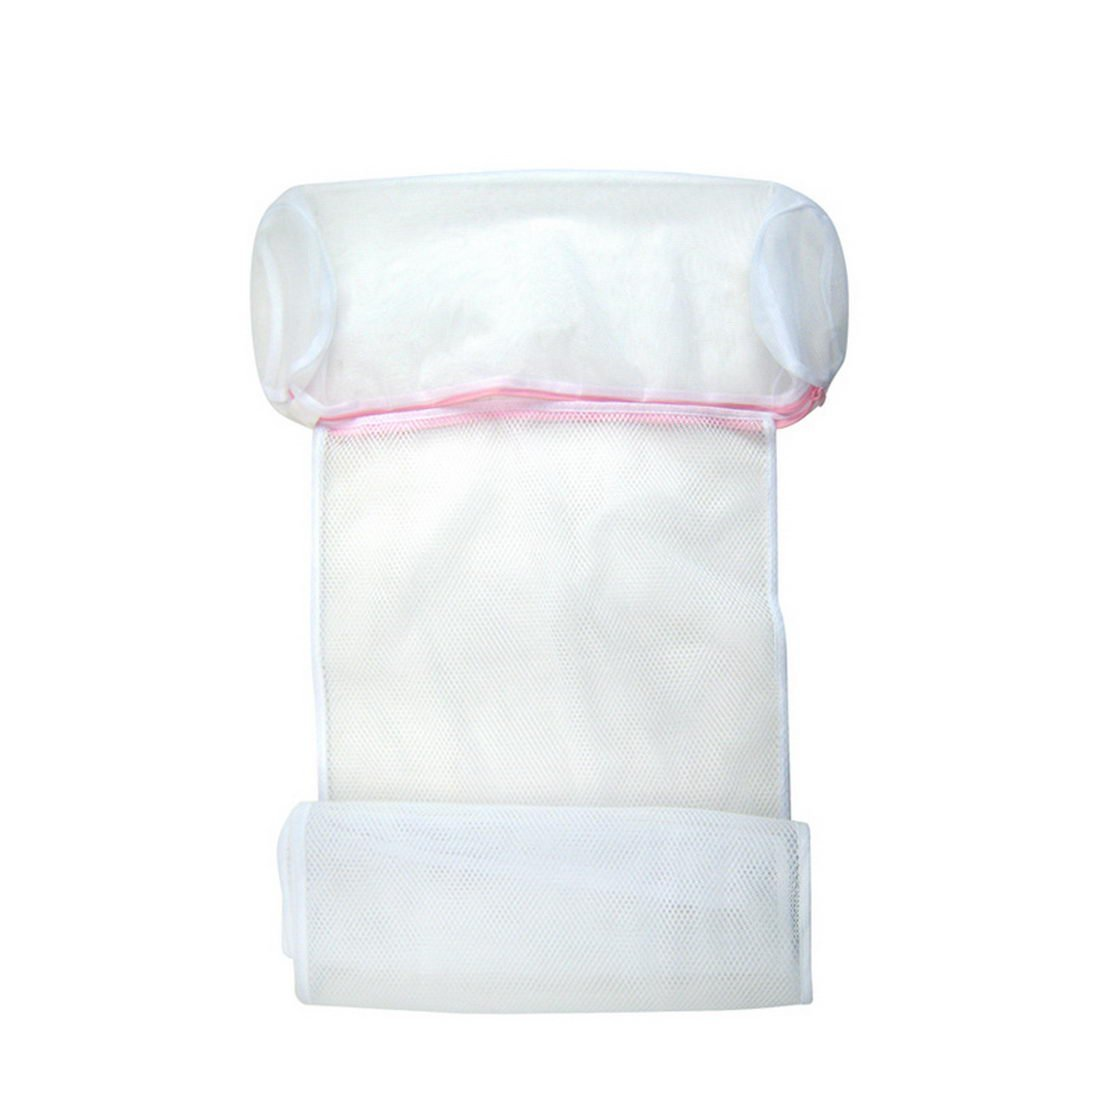 b7a72c55f5d3 Cheap Men Wash Bags, find Men Wash Bags deals on line at Alibaba.com